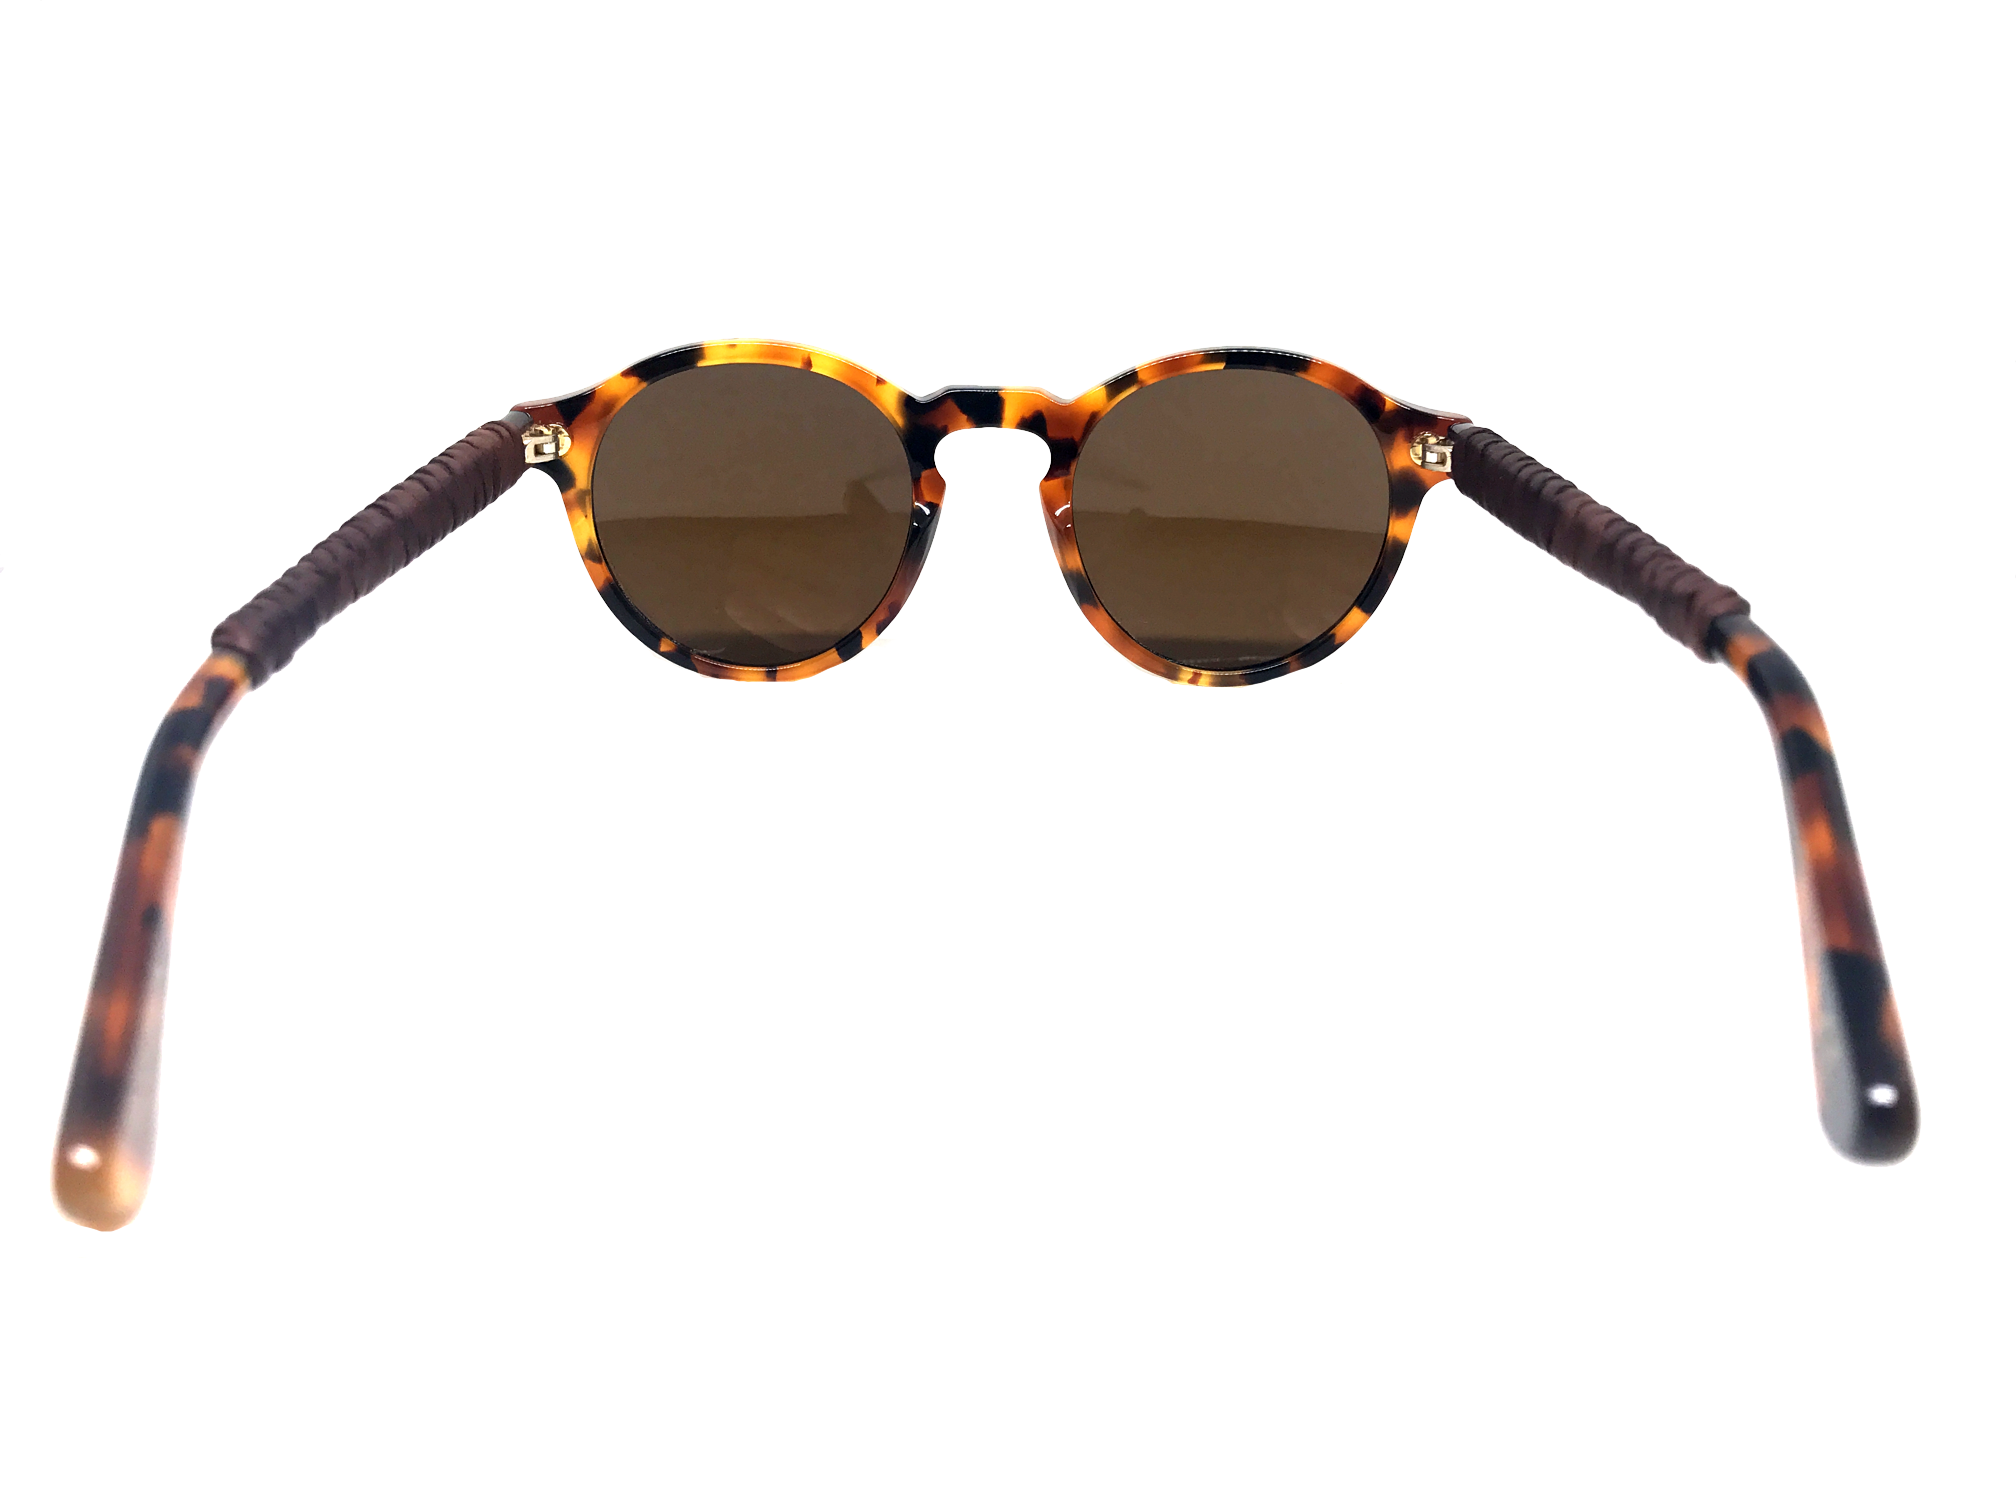 ACE Tortoise - BOCA MMXII - Official website